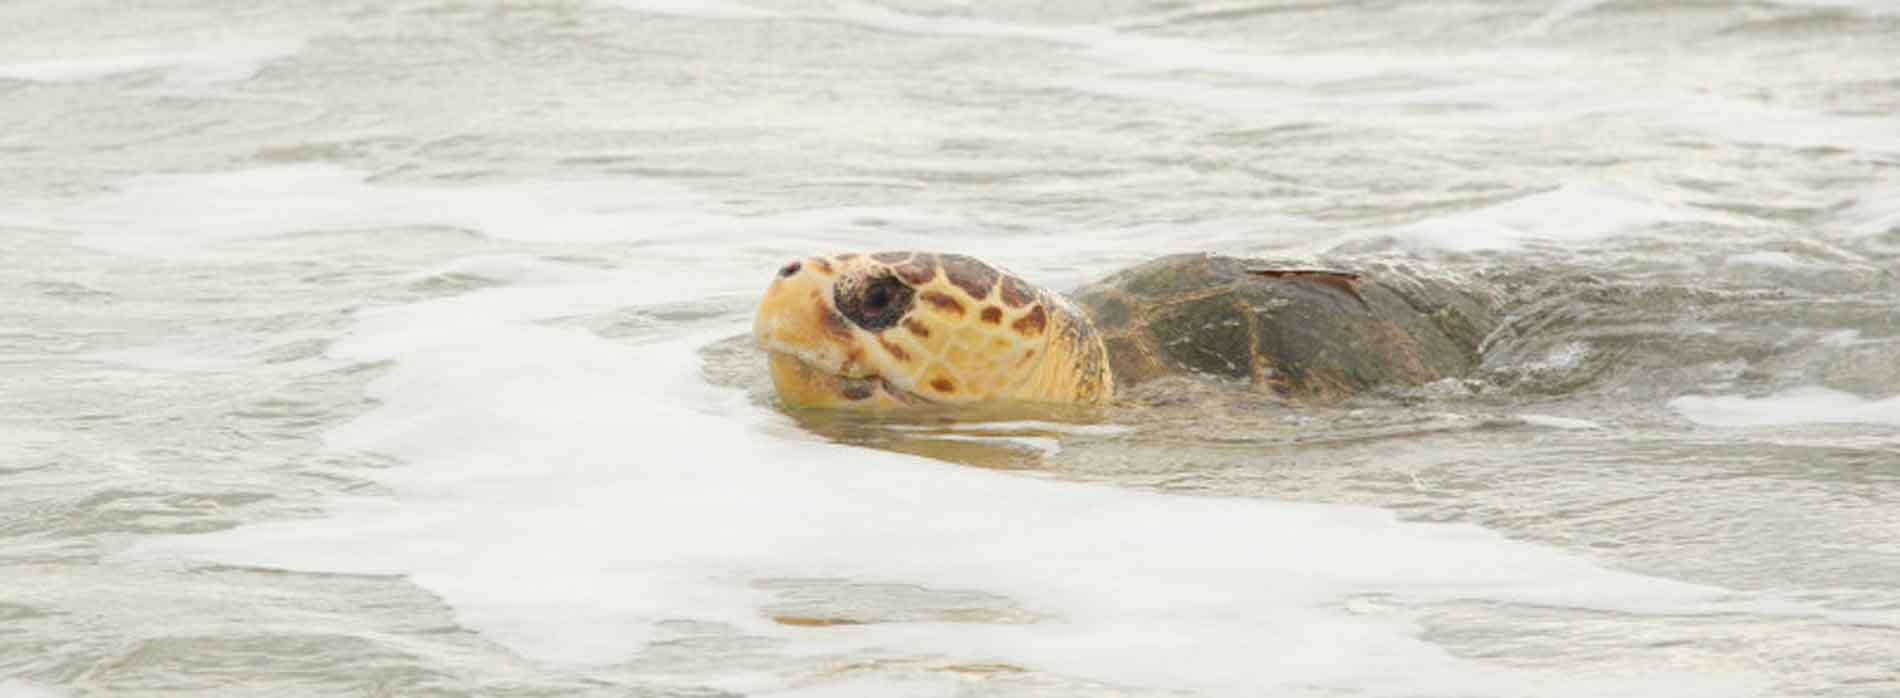 Sea turtle in shallow water